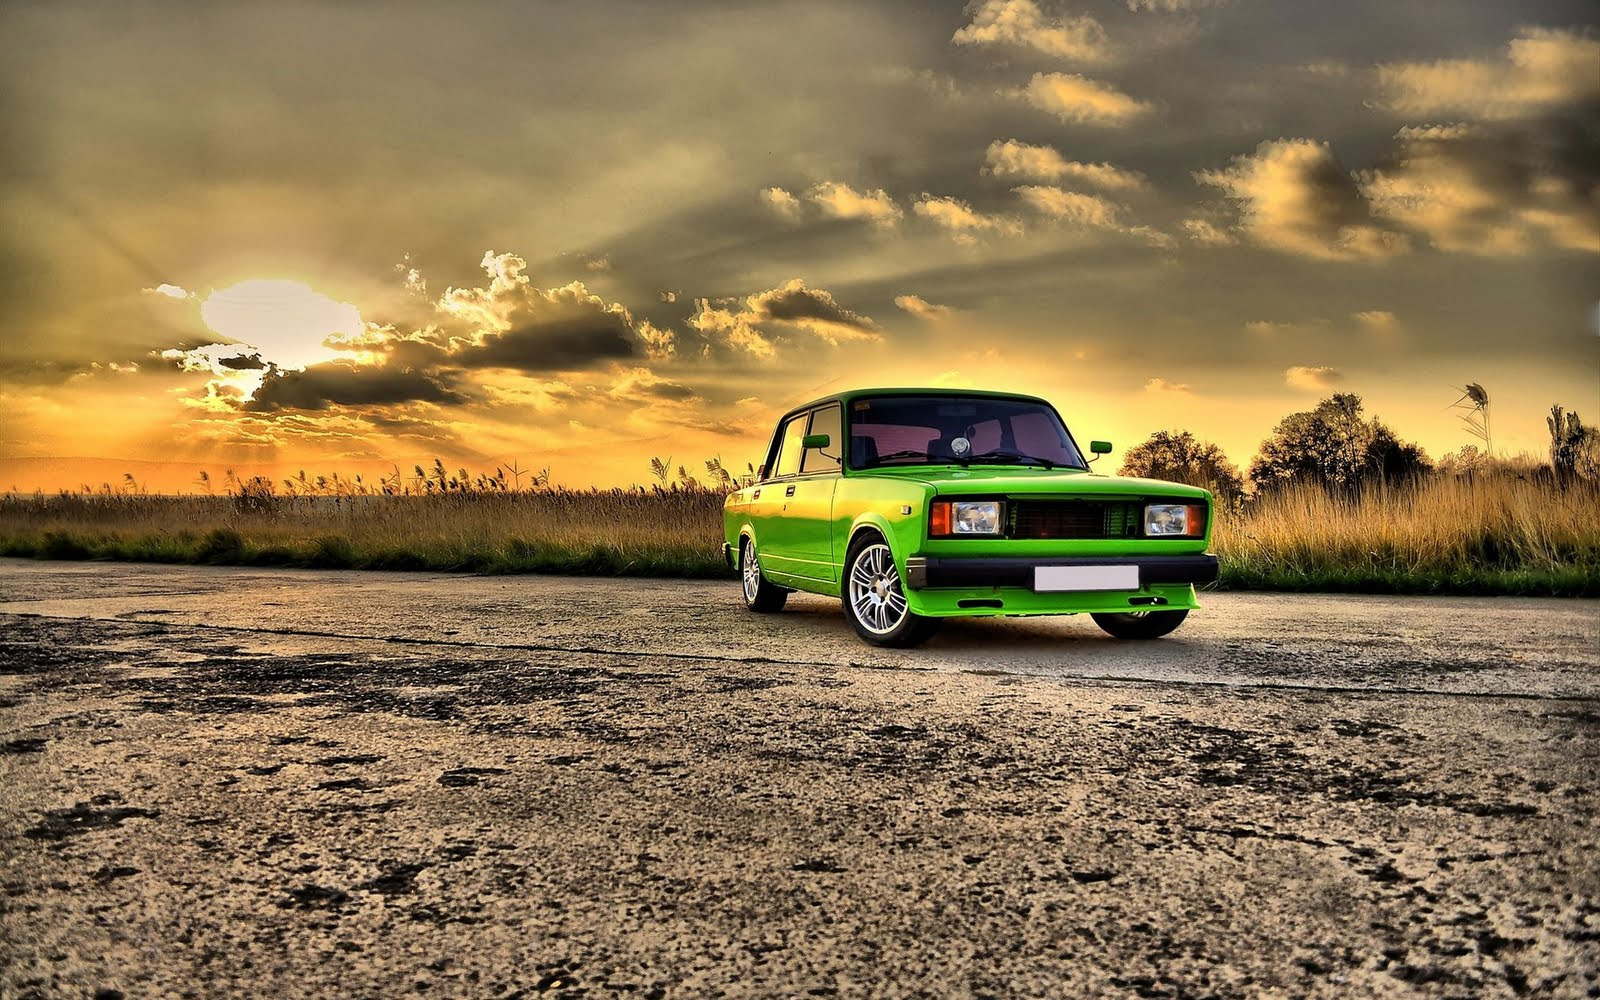 Awesome HD Wallpaper Collection Super Green Car Custom